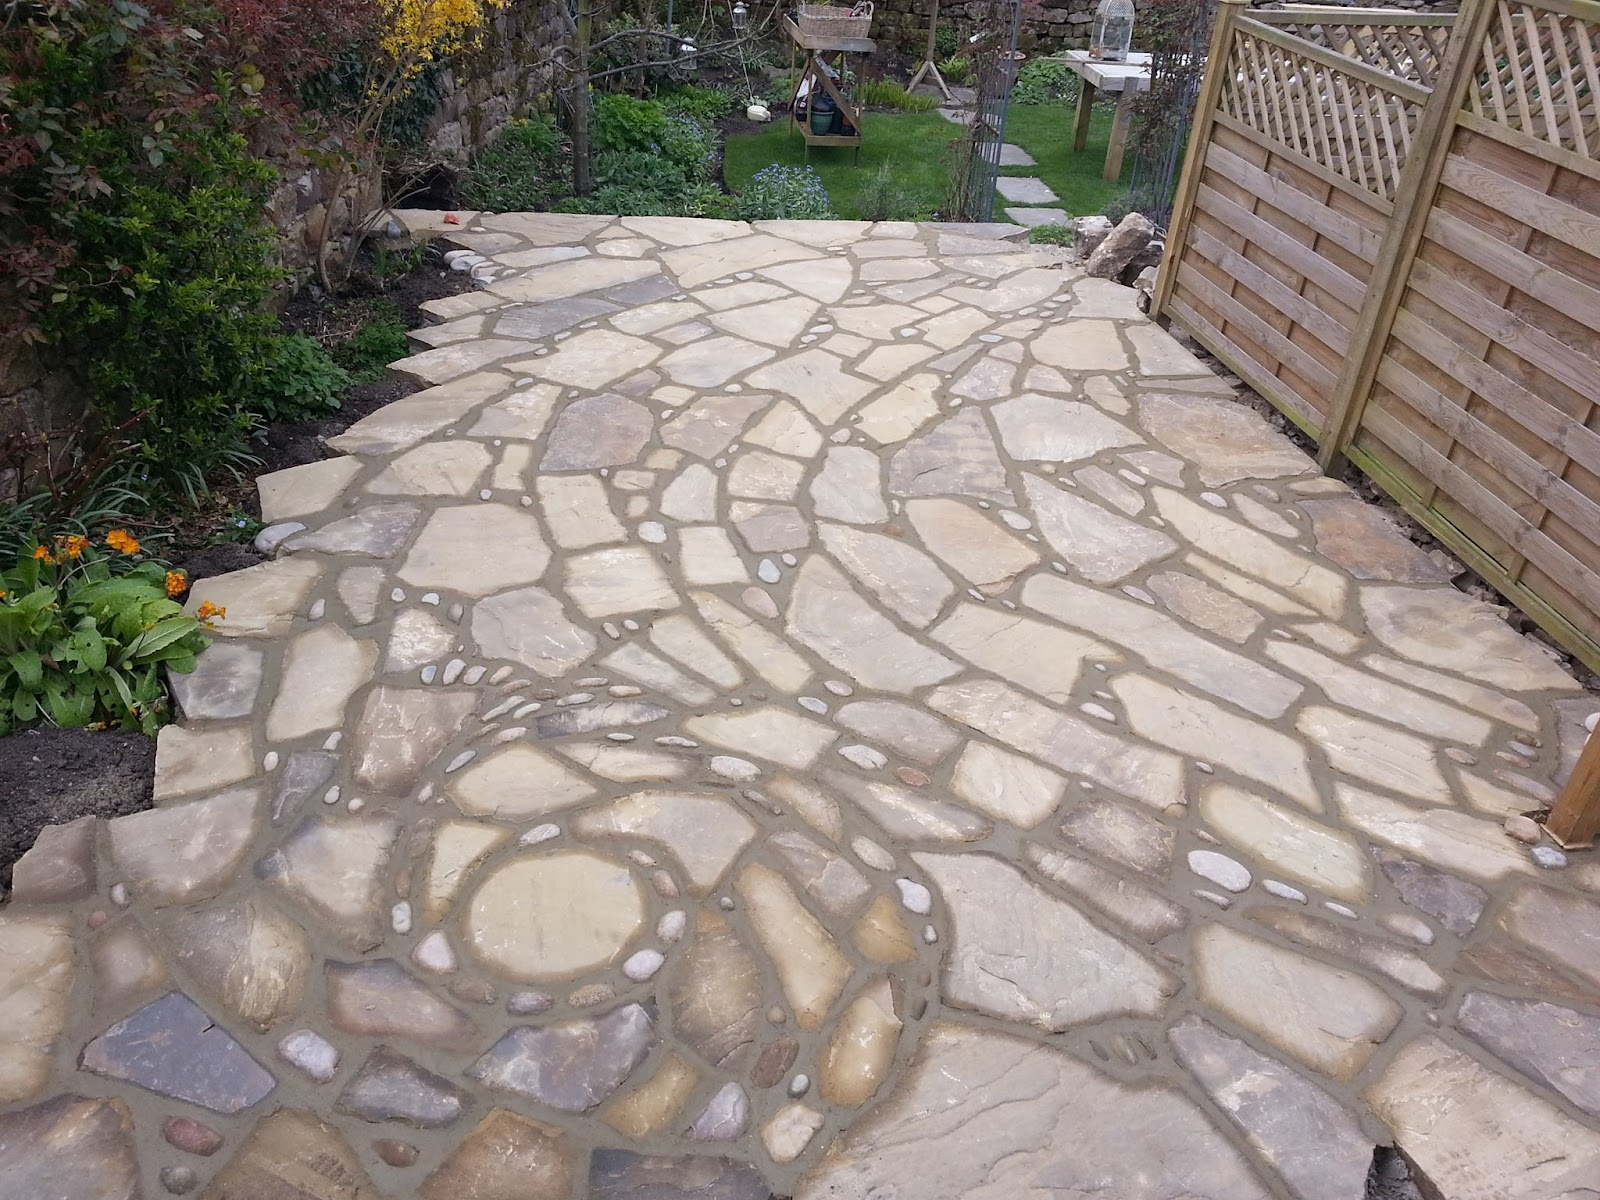 06-Johnny-Clasper-Sculpture-Paths-and-Walls-with-Rocks-and-Stones-www-designstack-co